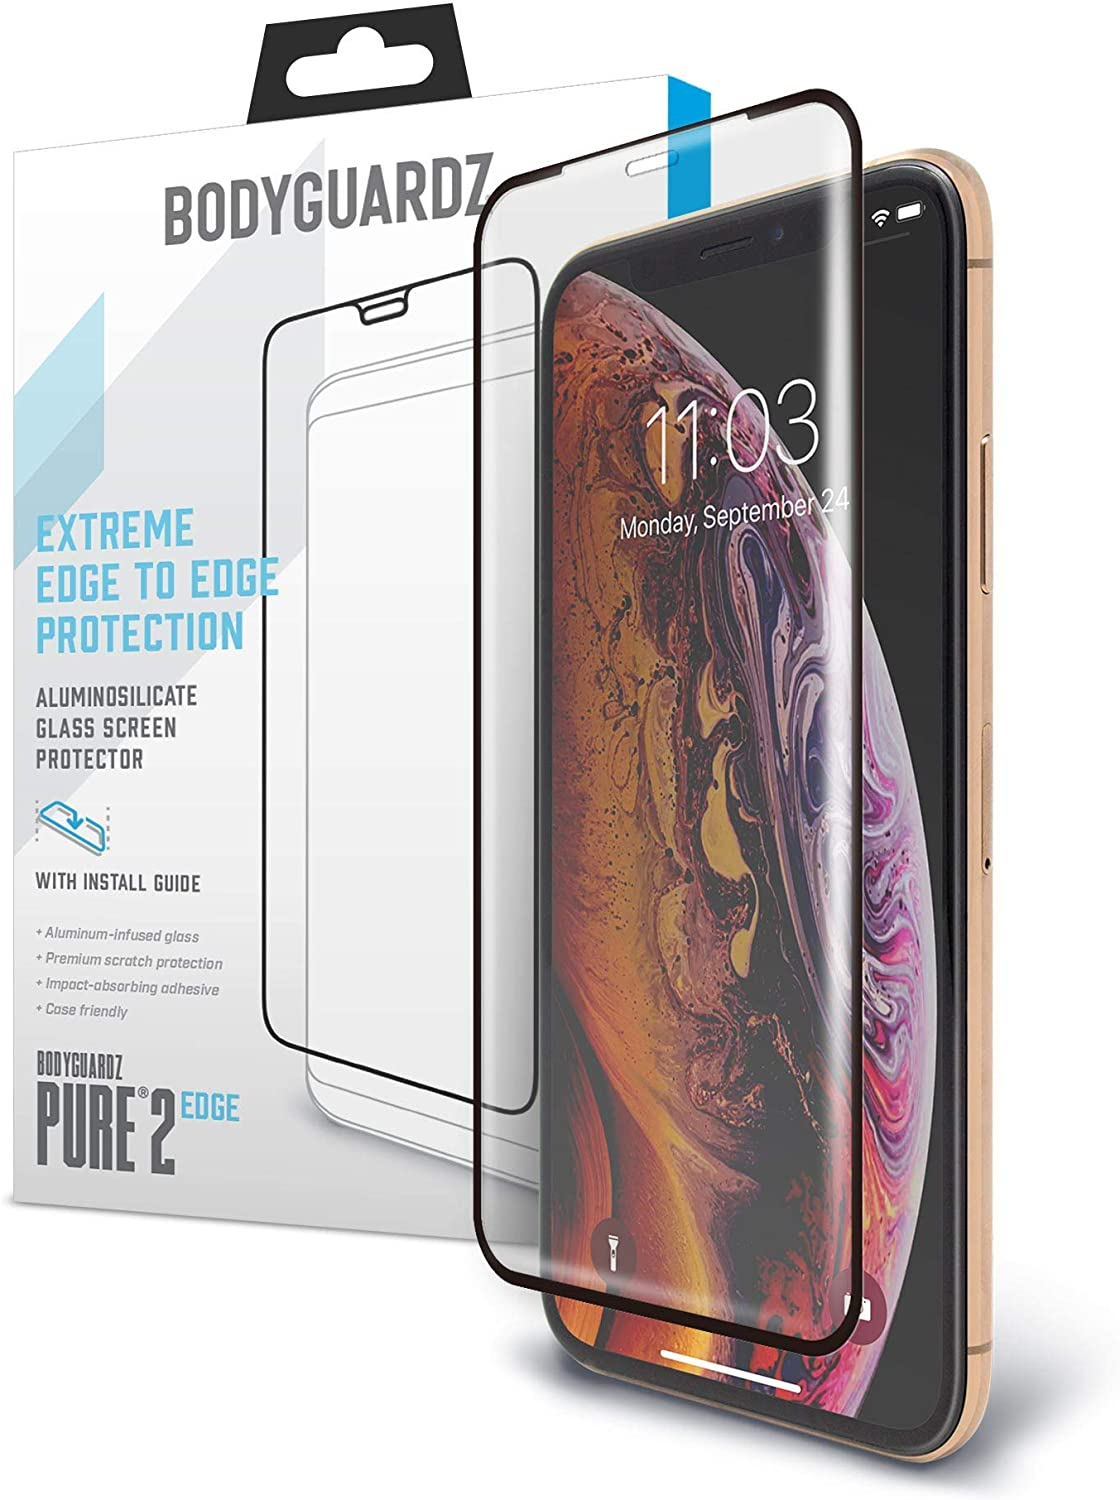 BodyGuardz - Pure 2 Edge Glass Screen Protector for iPhone 11 Pro Max, Ultra-Thin Edge-to-Edge Tempered Glass Screen Protection - Case Friendly